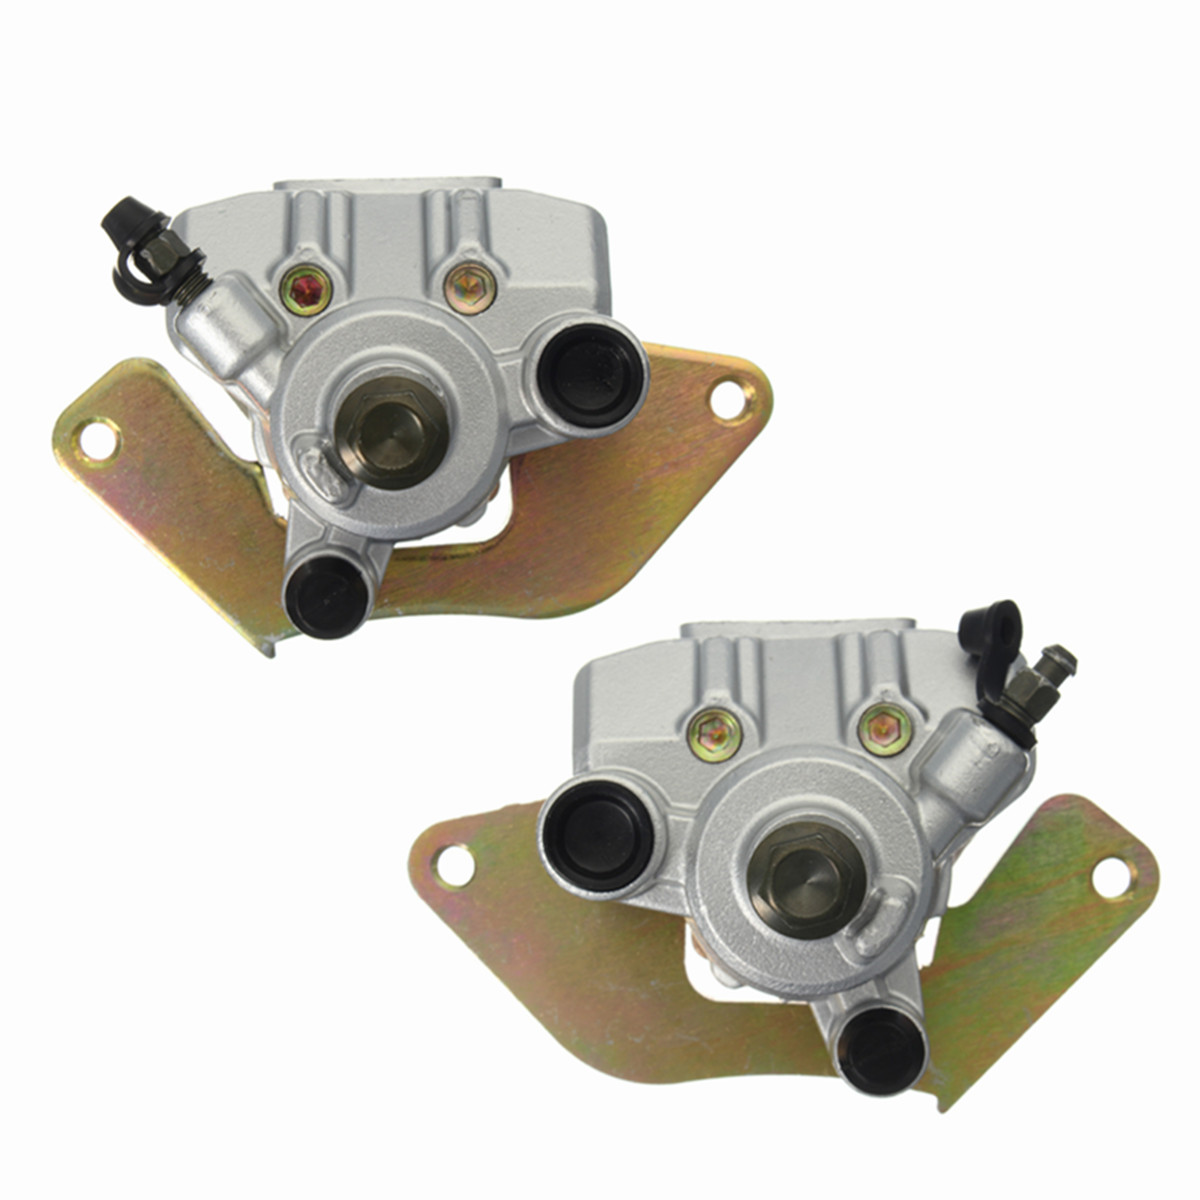 New 2Pcs ATV Front Brake Caliper for Honda Rancher 420 TRX420 07-15 Foreman US